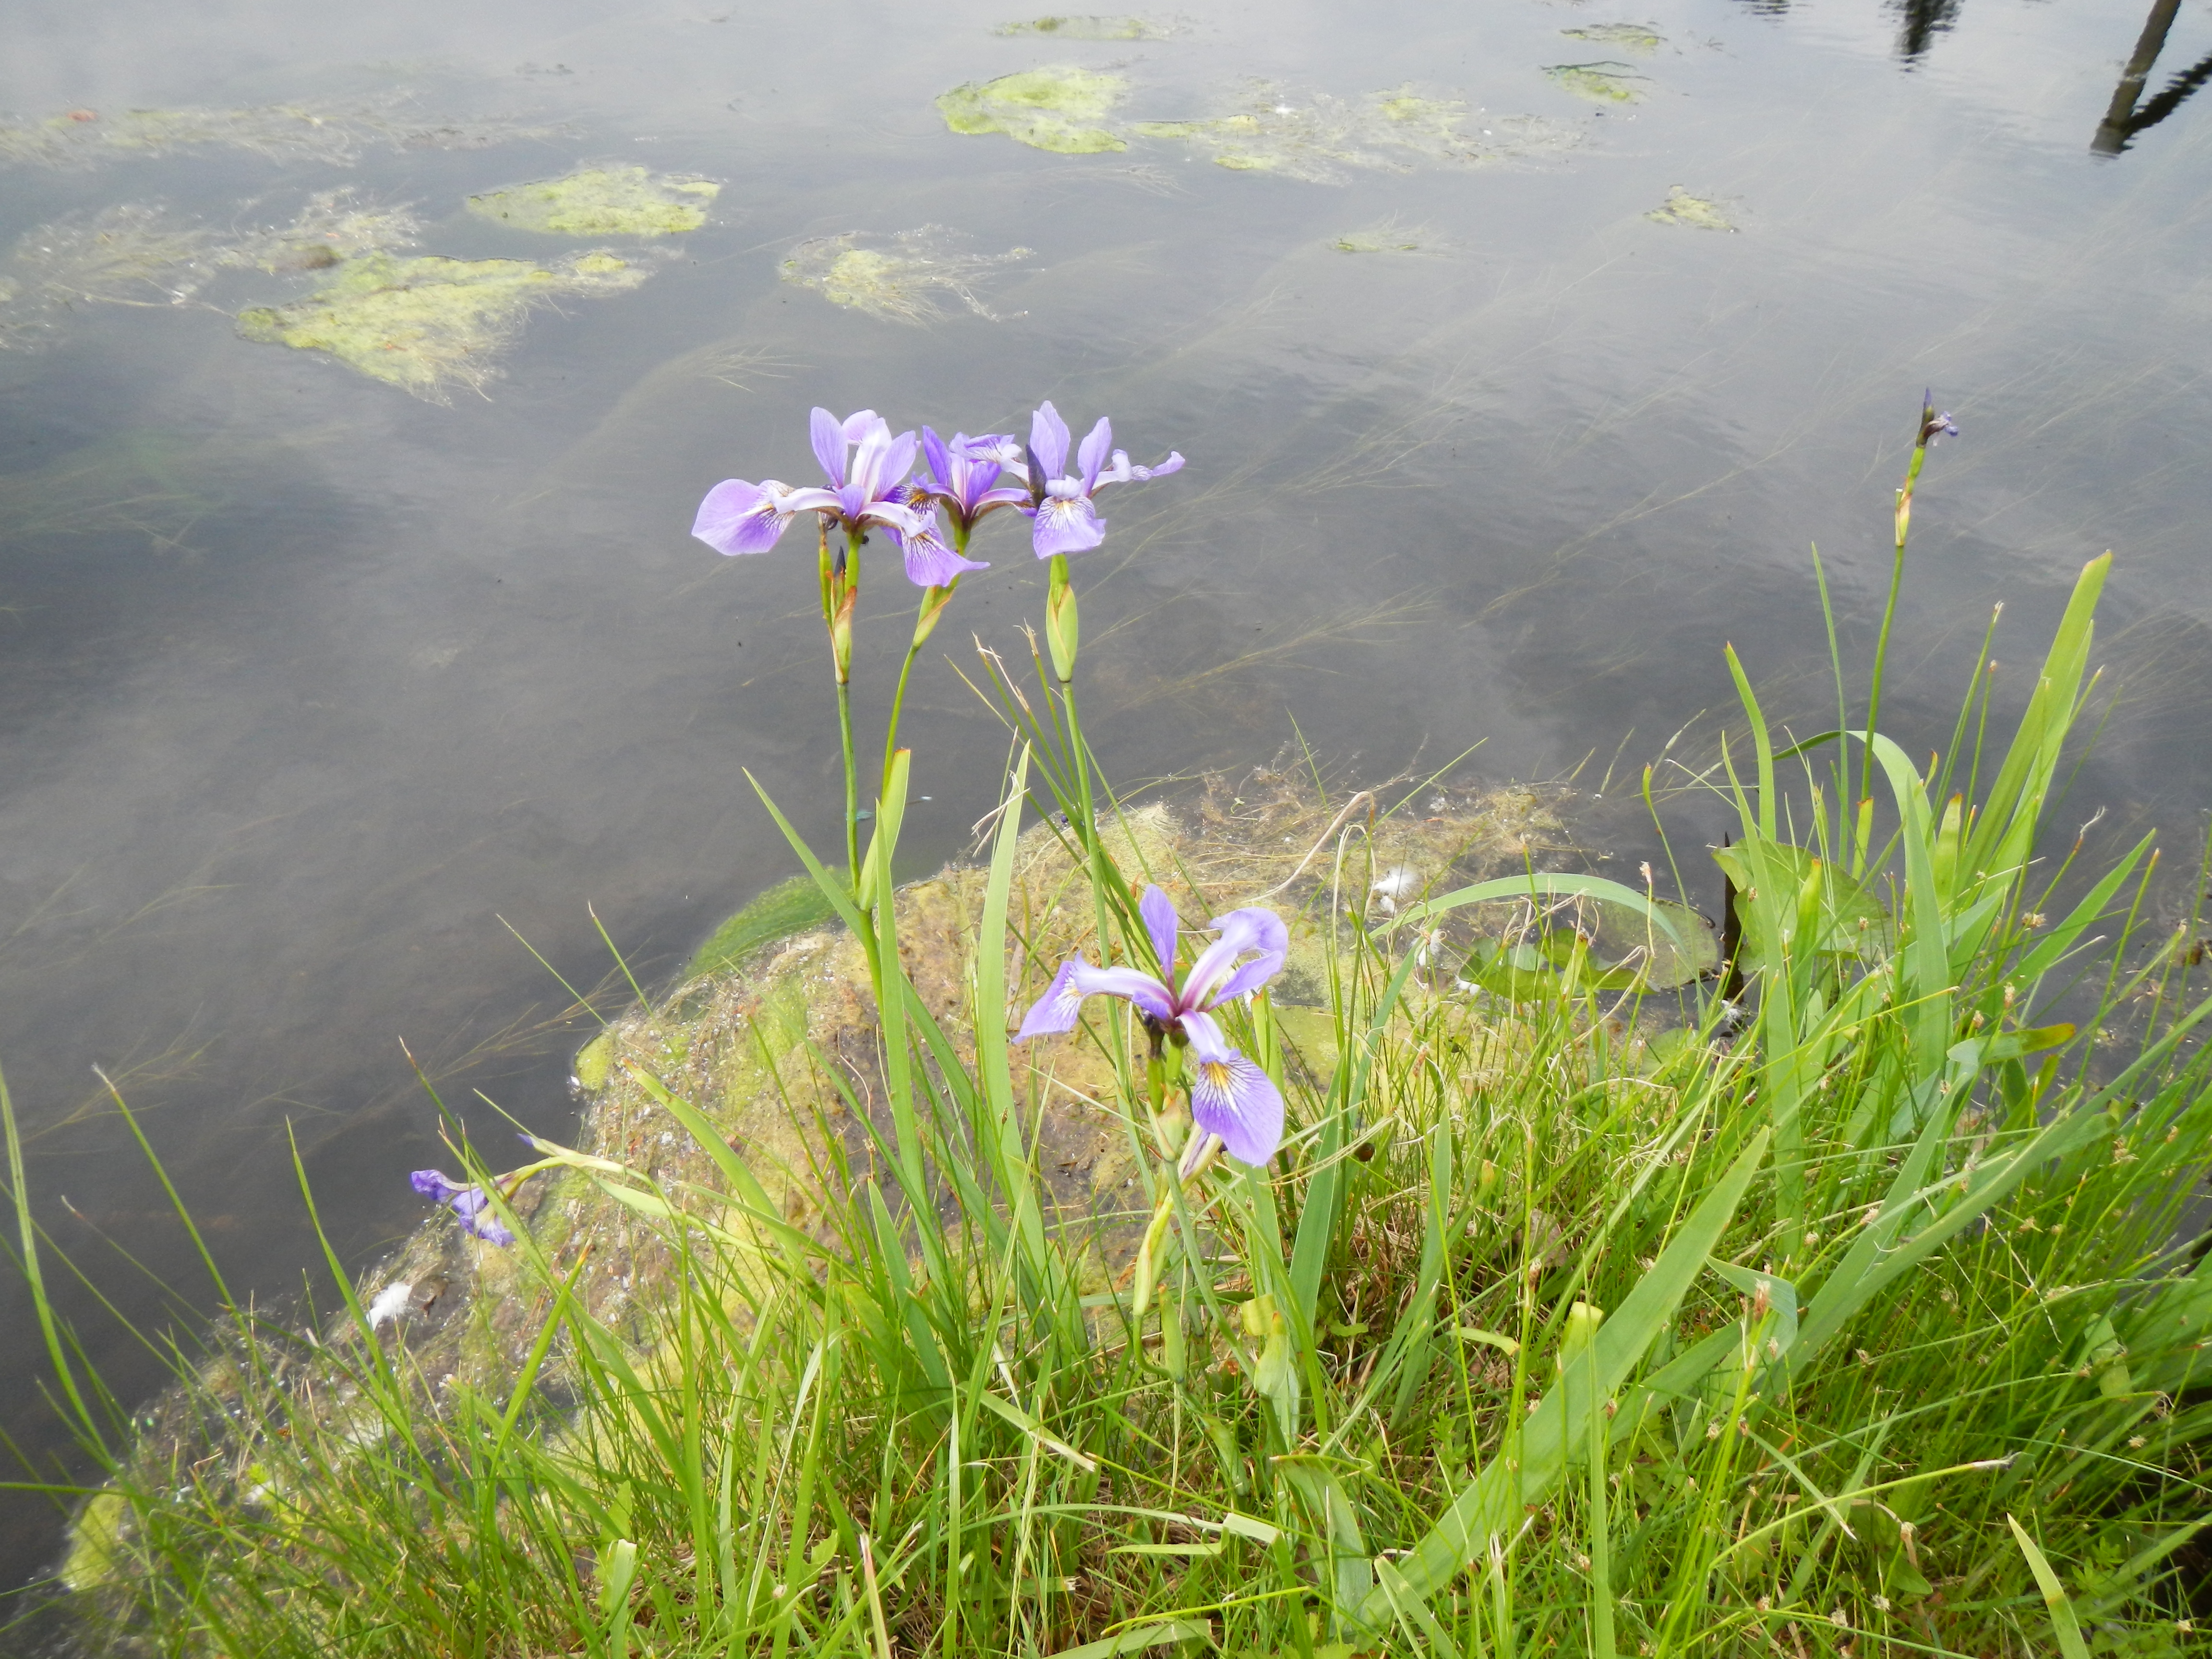 A beautiful place nevertheless, as these irises show...